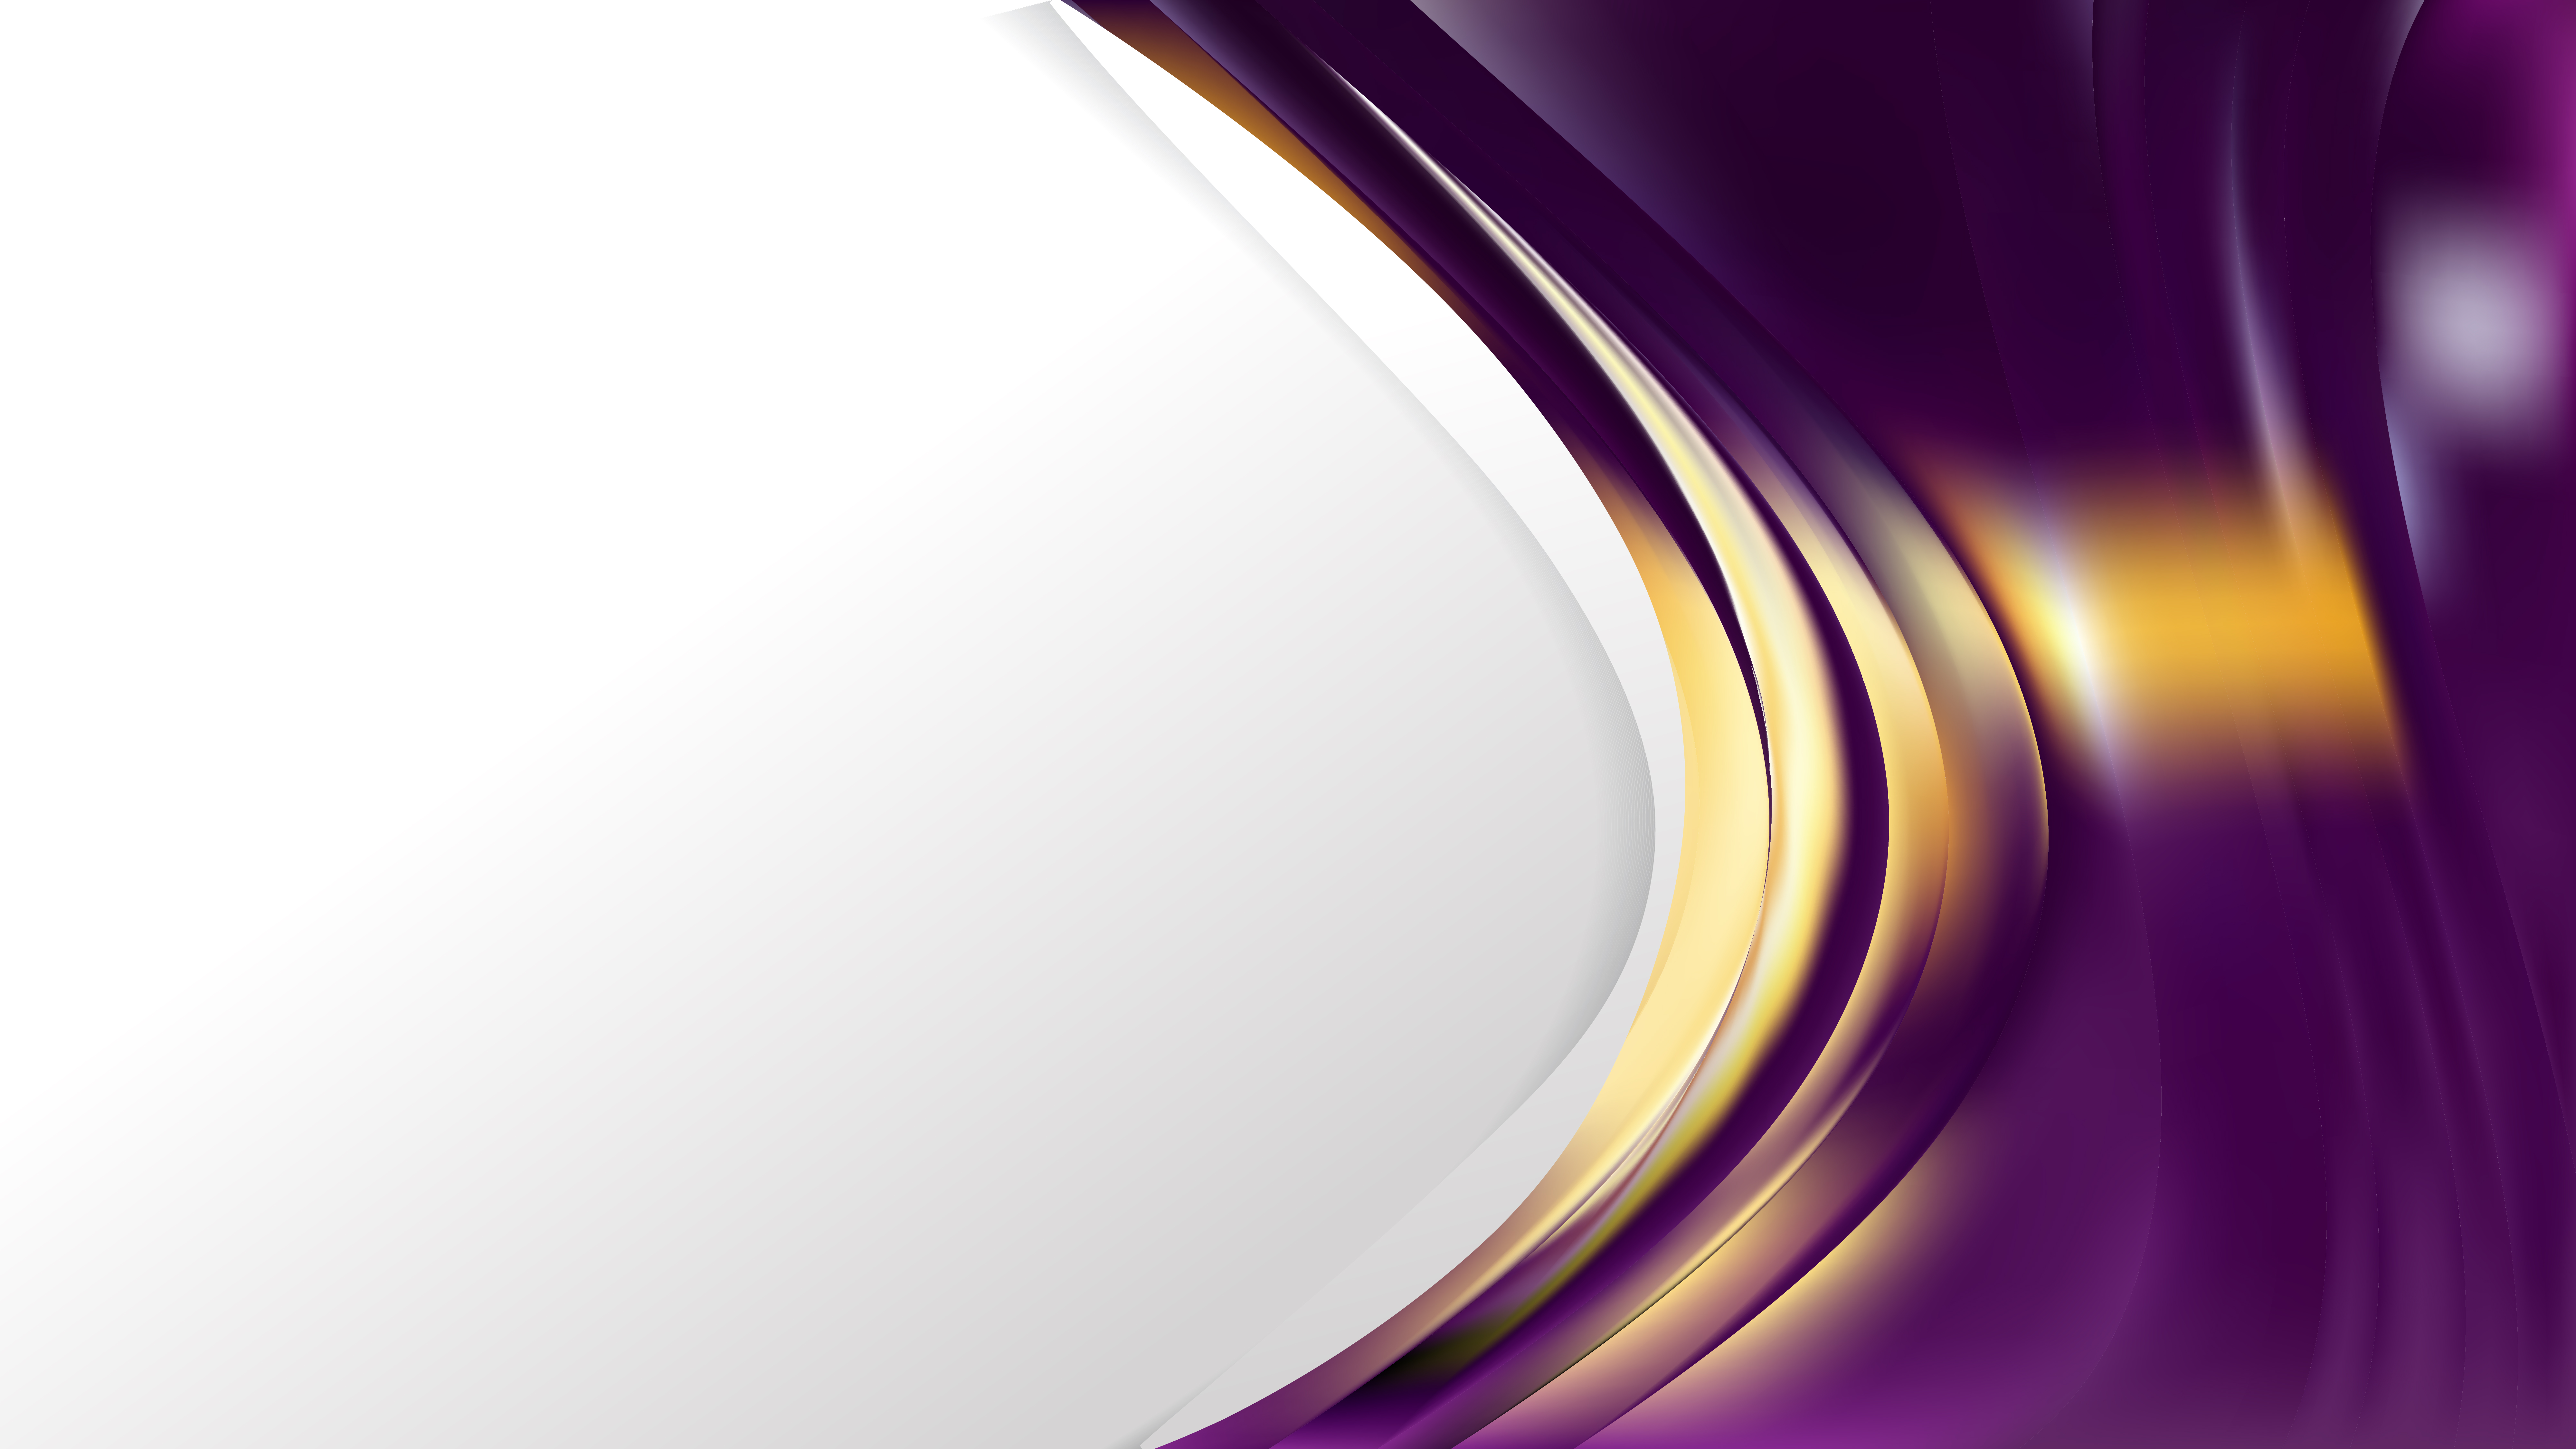 abstract purple and gold wave business background. Black Bedroom Furniture Sets. Home Design Ideas